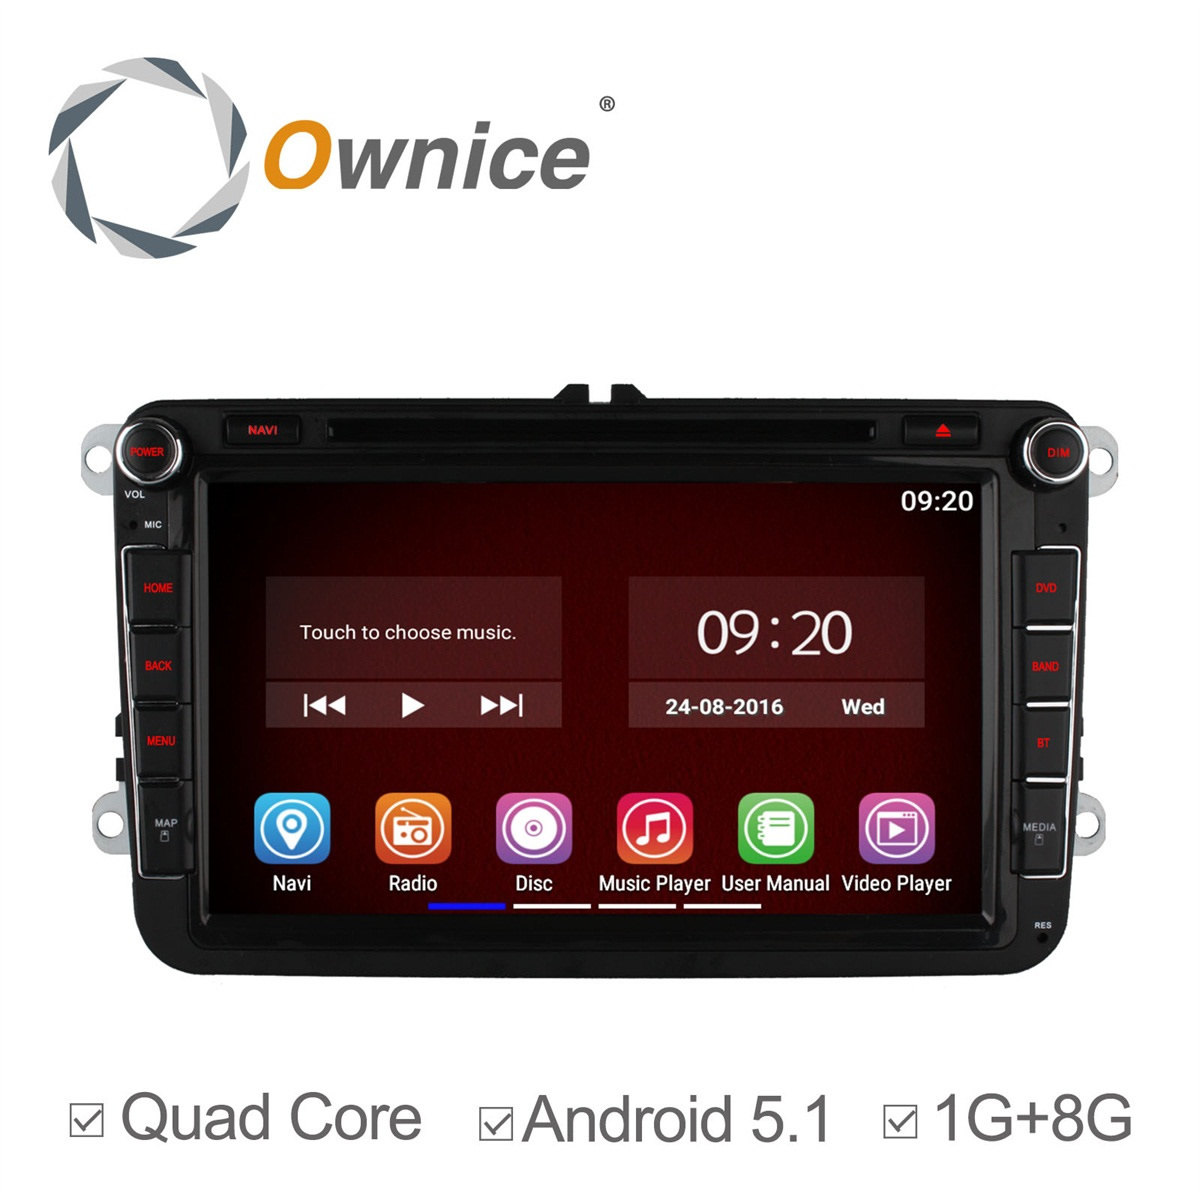 Quad Core Android 5.1 Car DVD Player GPS VW GOLF 5 Golf 6 POLO PASSAT CC JETTA TIGUAN TOURAN EOS SHARAN TRANSPORTER T5 CADDY - Carwin Top D V r store